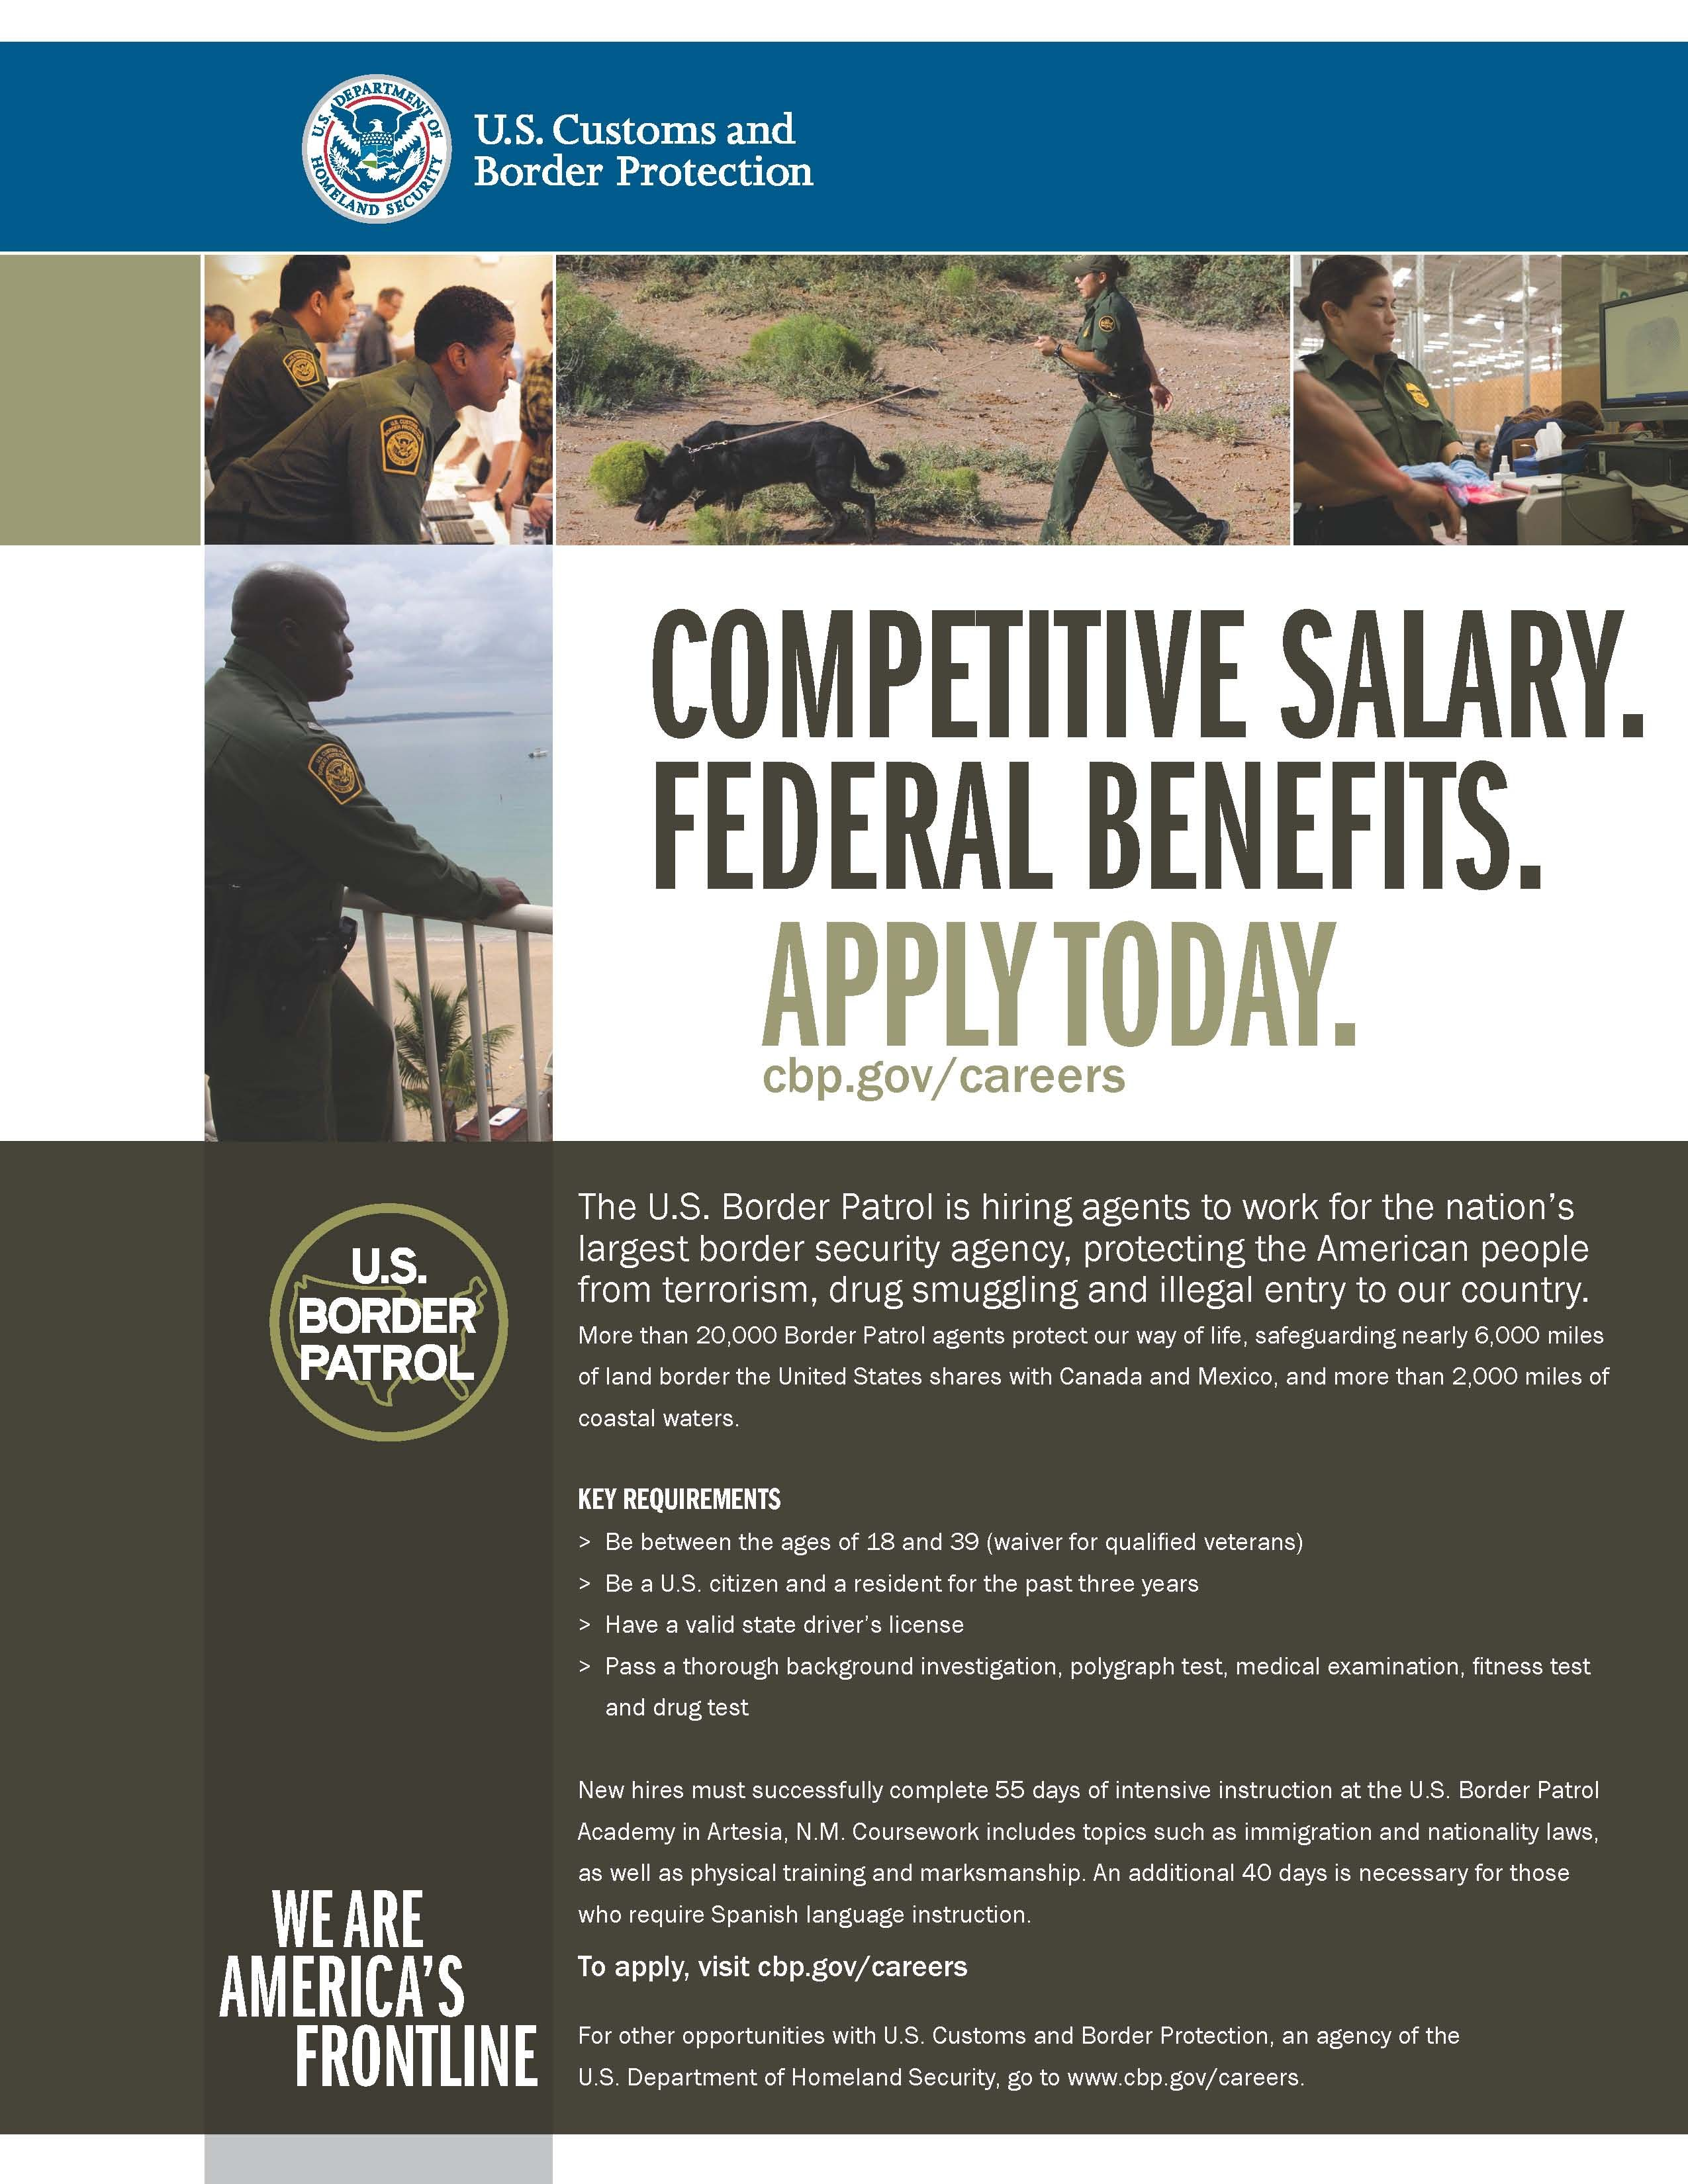 The U S  Border Patrol is looking for candidates to fill their ranks